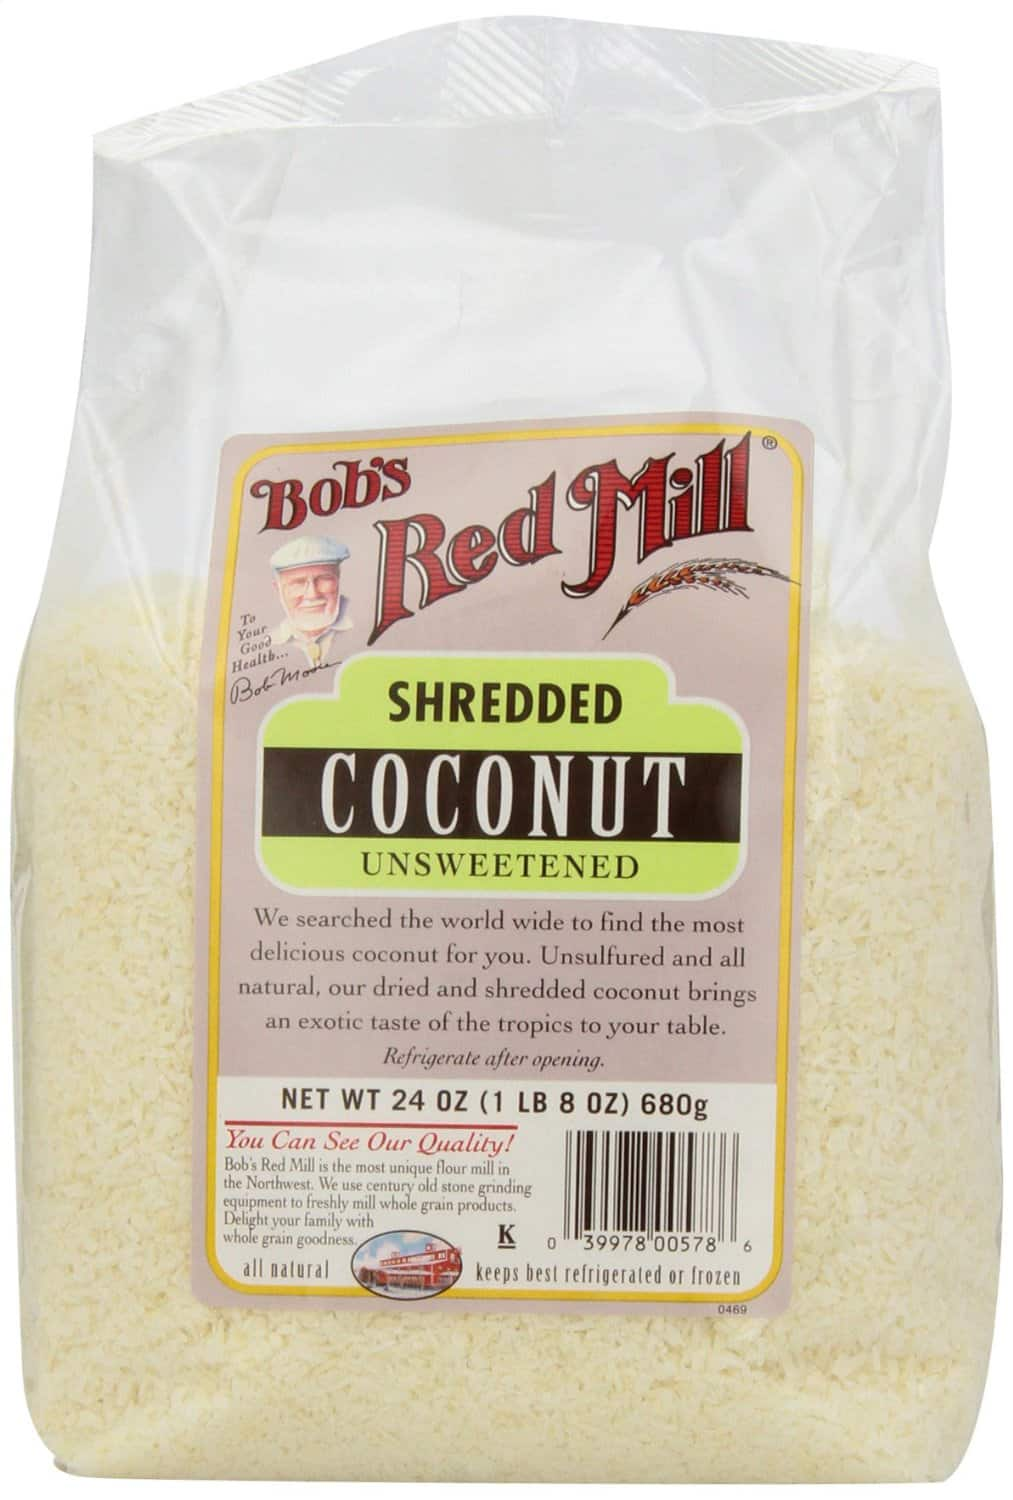 Bob's Red Mill Unsweetened Medium Shredded Coconut, 24-Ounce Packages (Pack of 4) as low as $14.61 or less (Amazon)